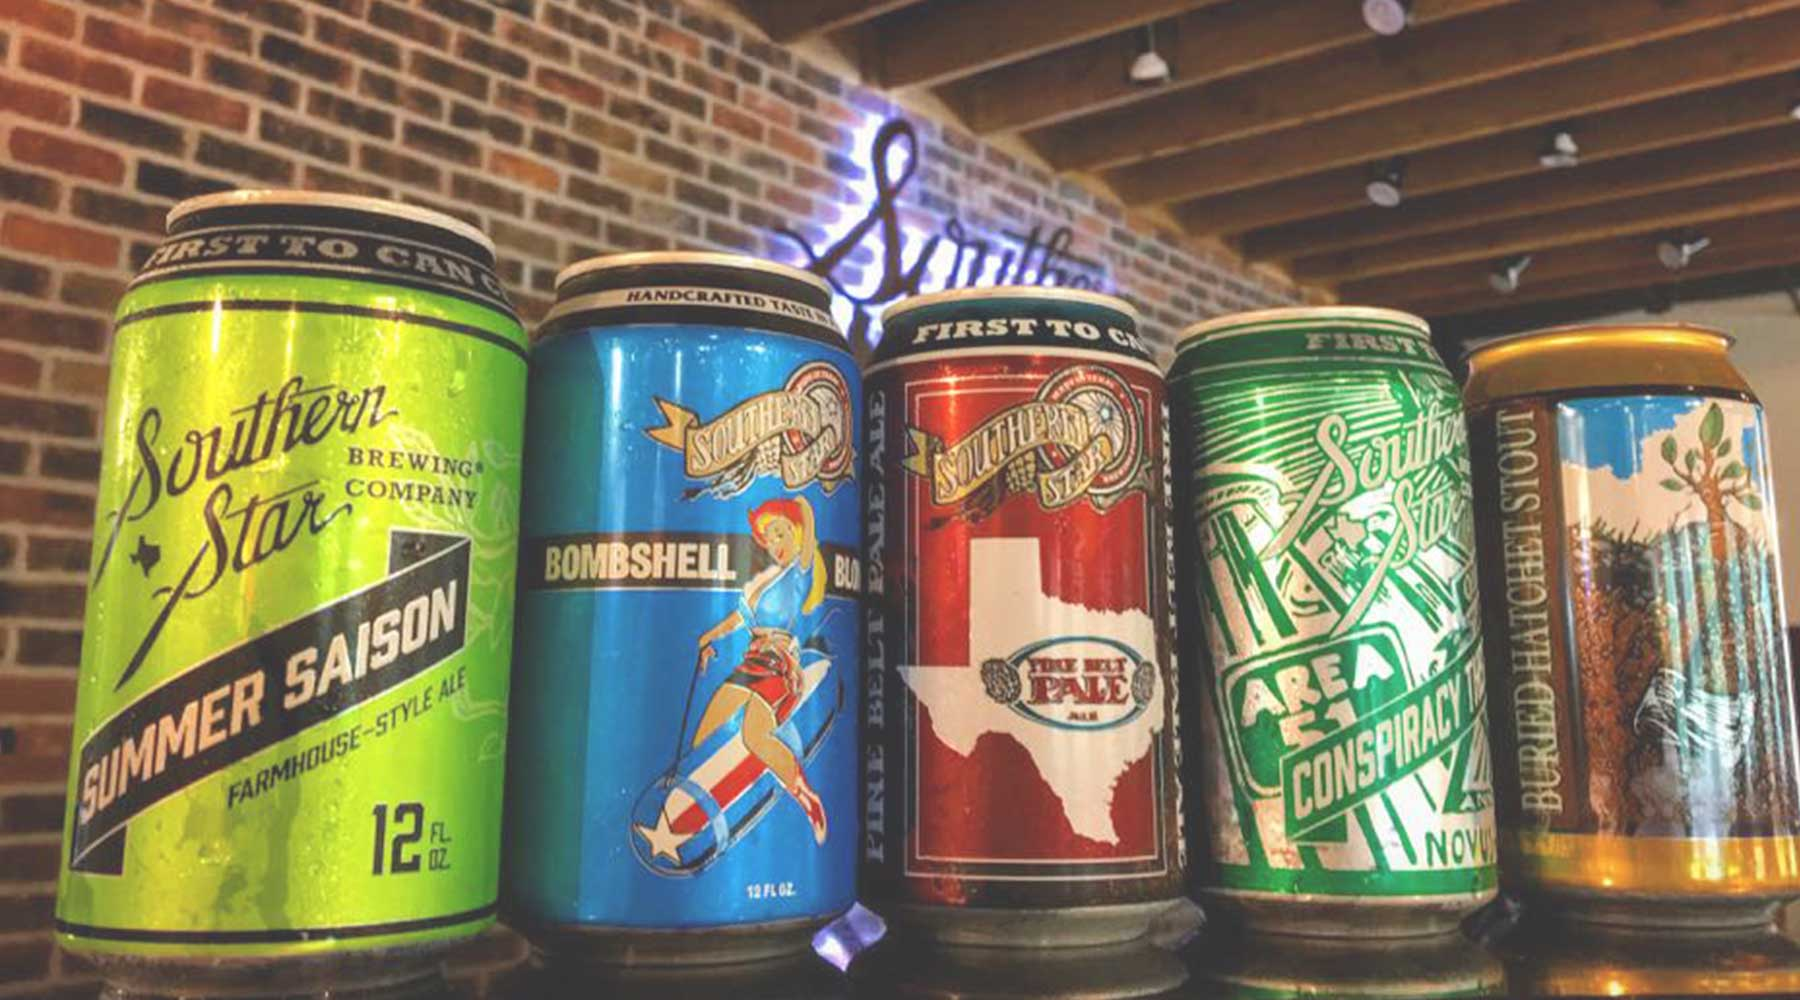 Southern Star Brewing Company | Just Wine